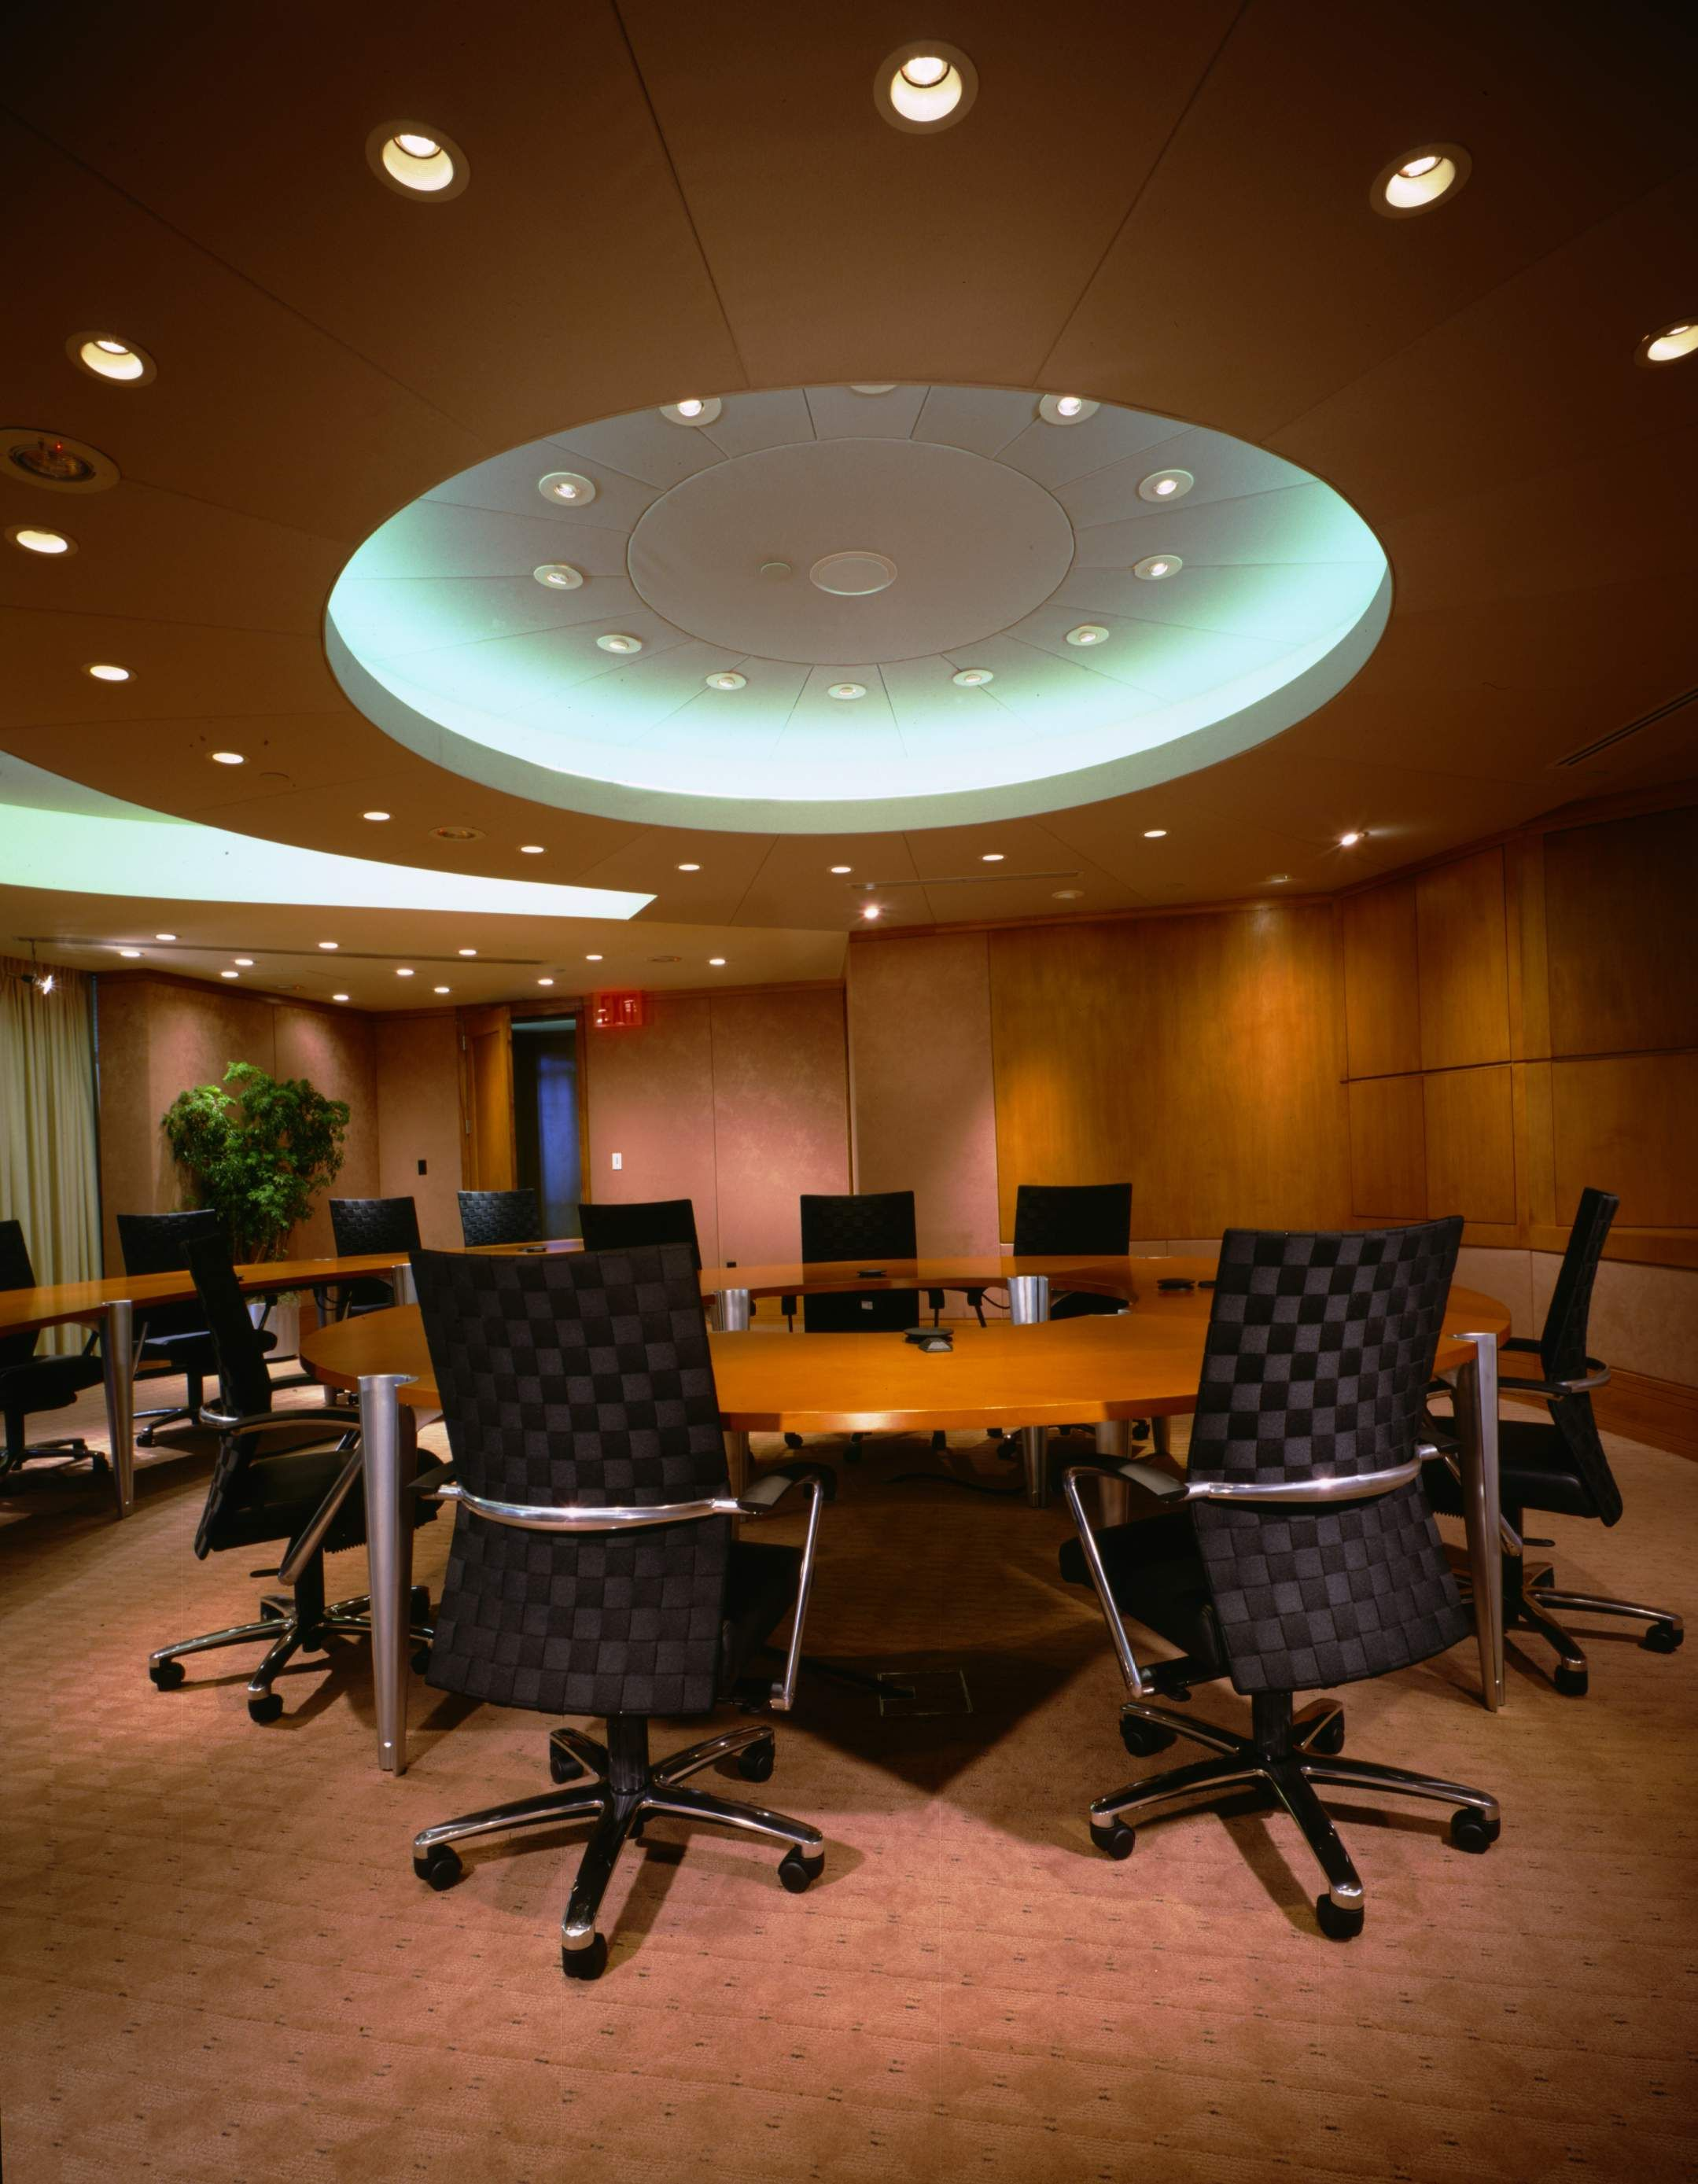 Board Room Interior. Interim Services. (Design by WSDG)